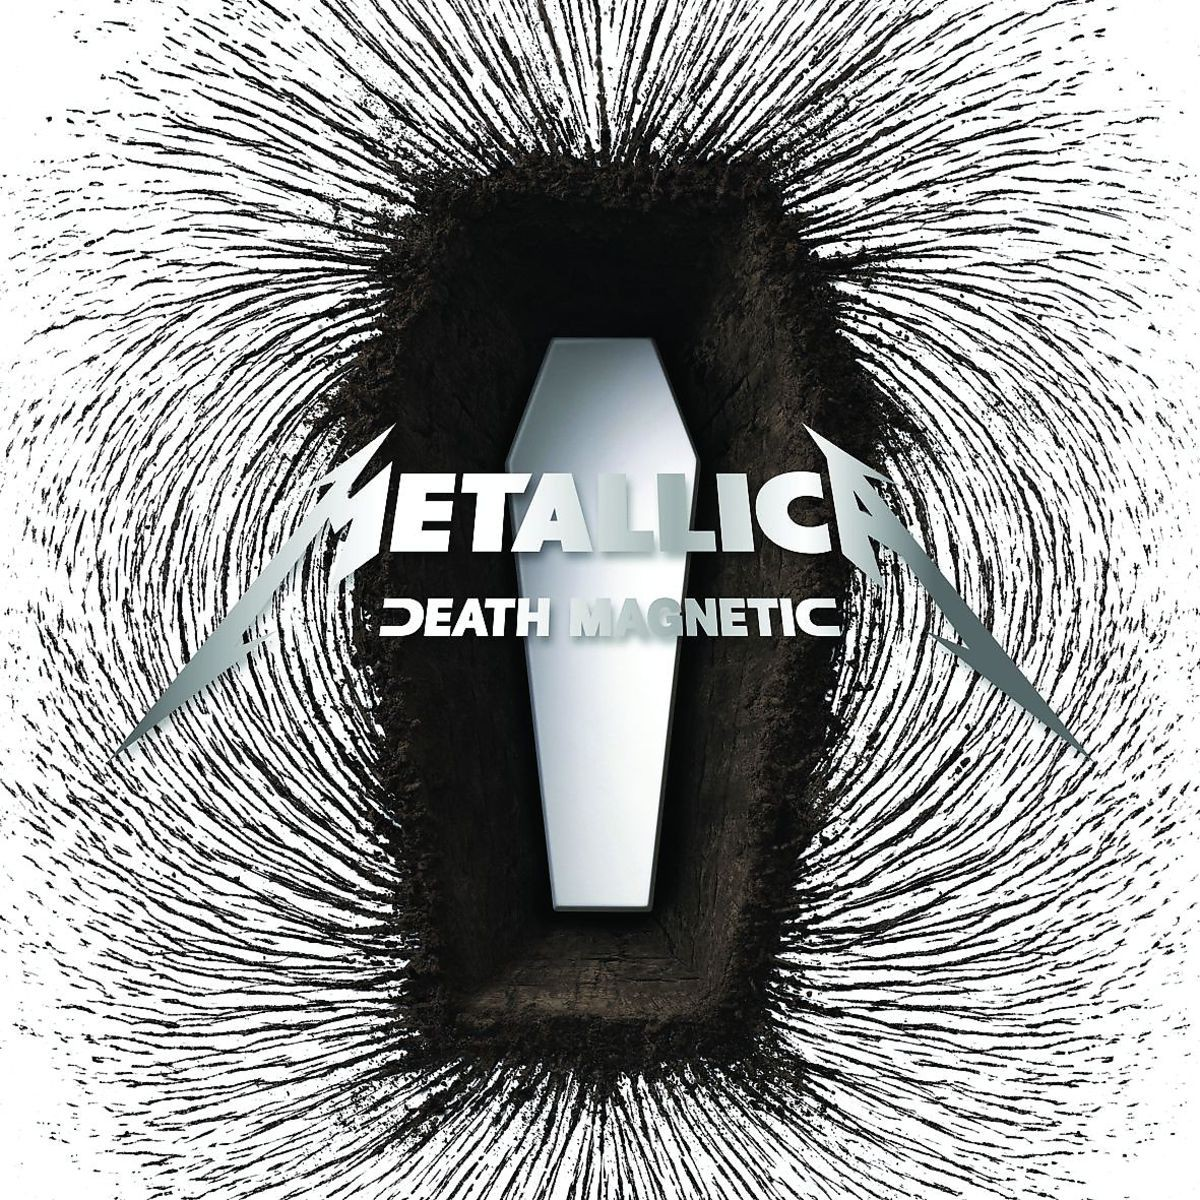 Metallica-Death Magnetic